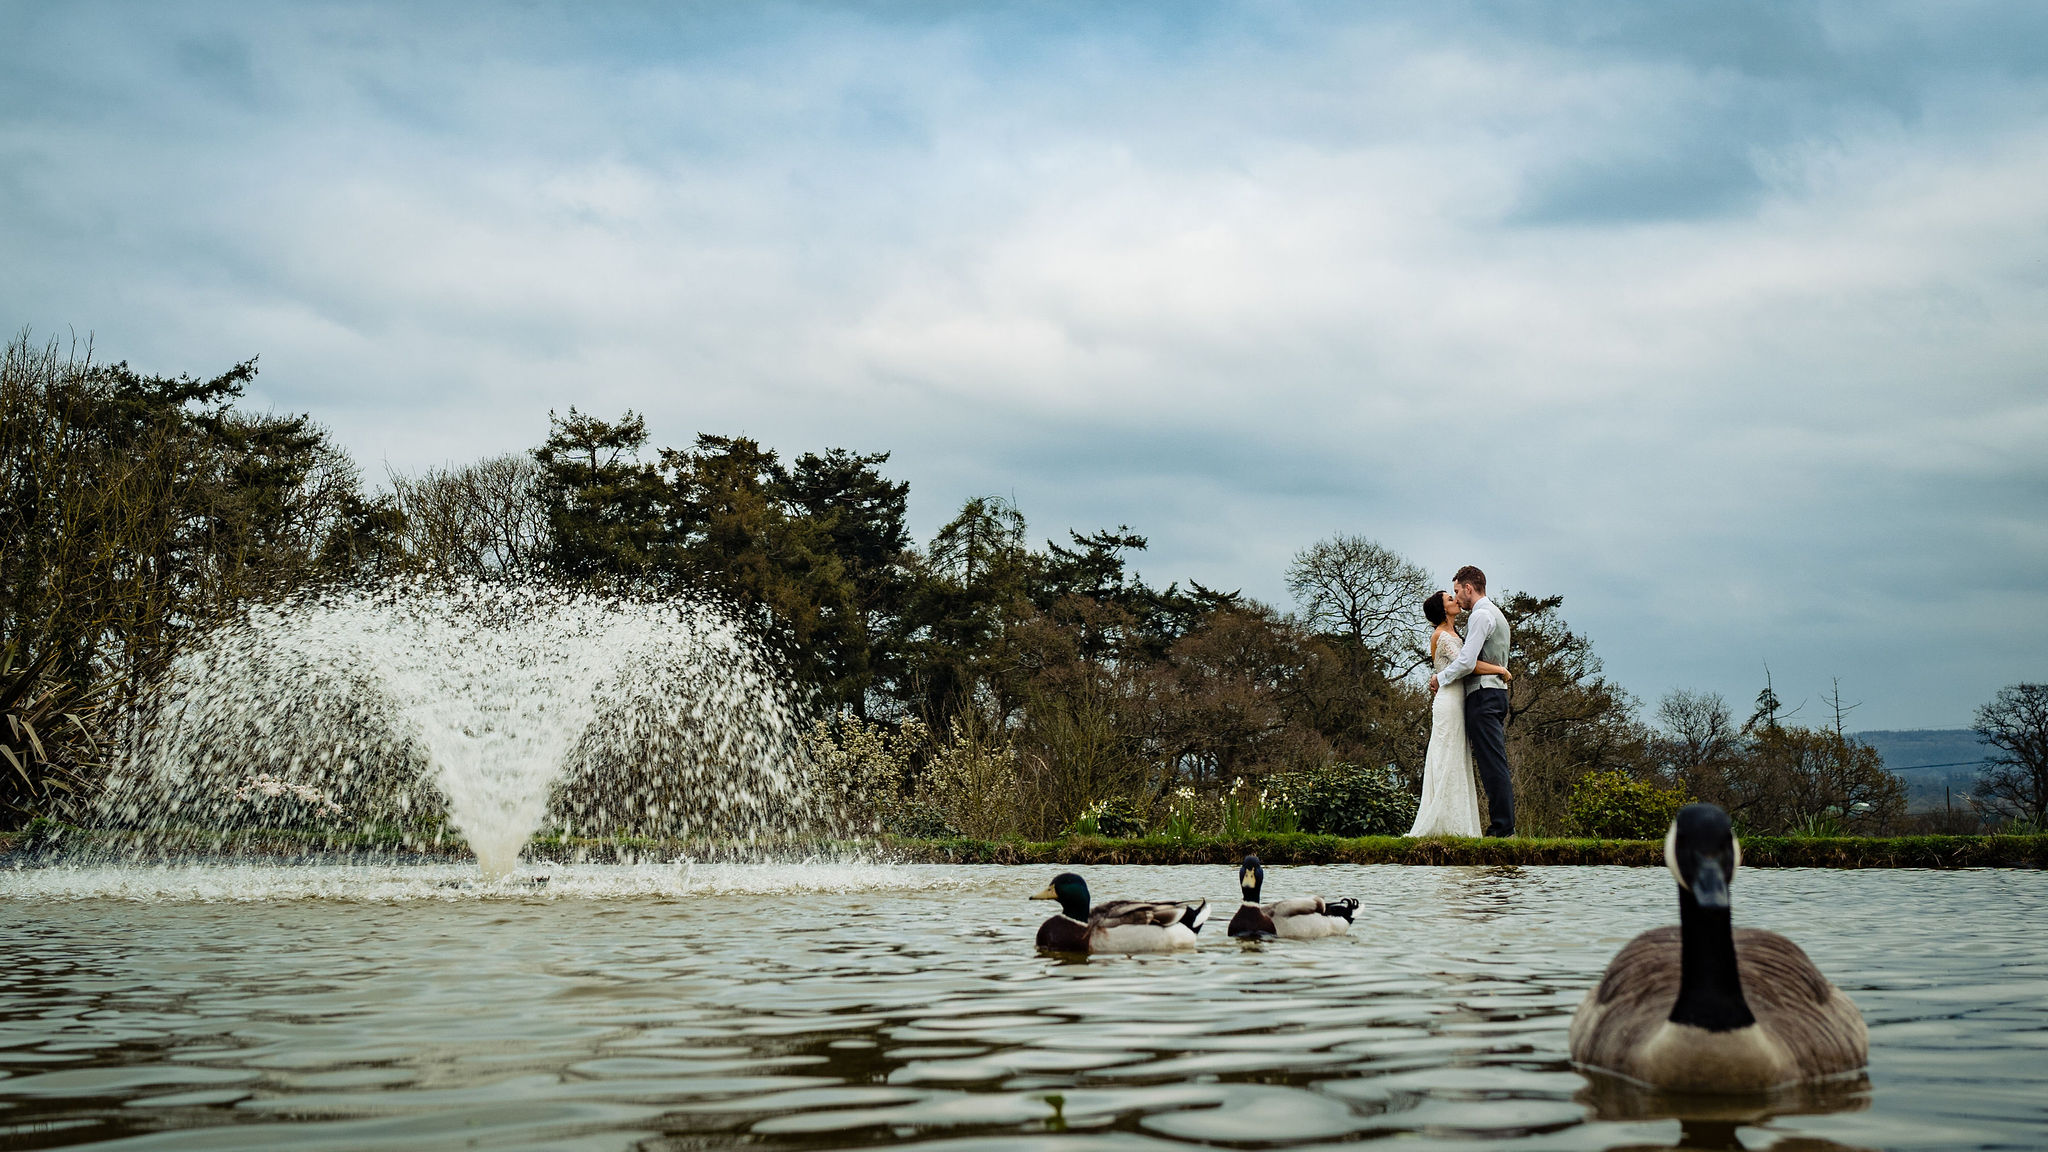 Bride and Groom enbrace beside the lake and fountain at Upton Barn & Walled Garden with a Canada Goose and ducks in the foreground